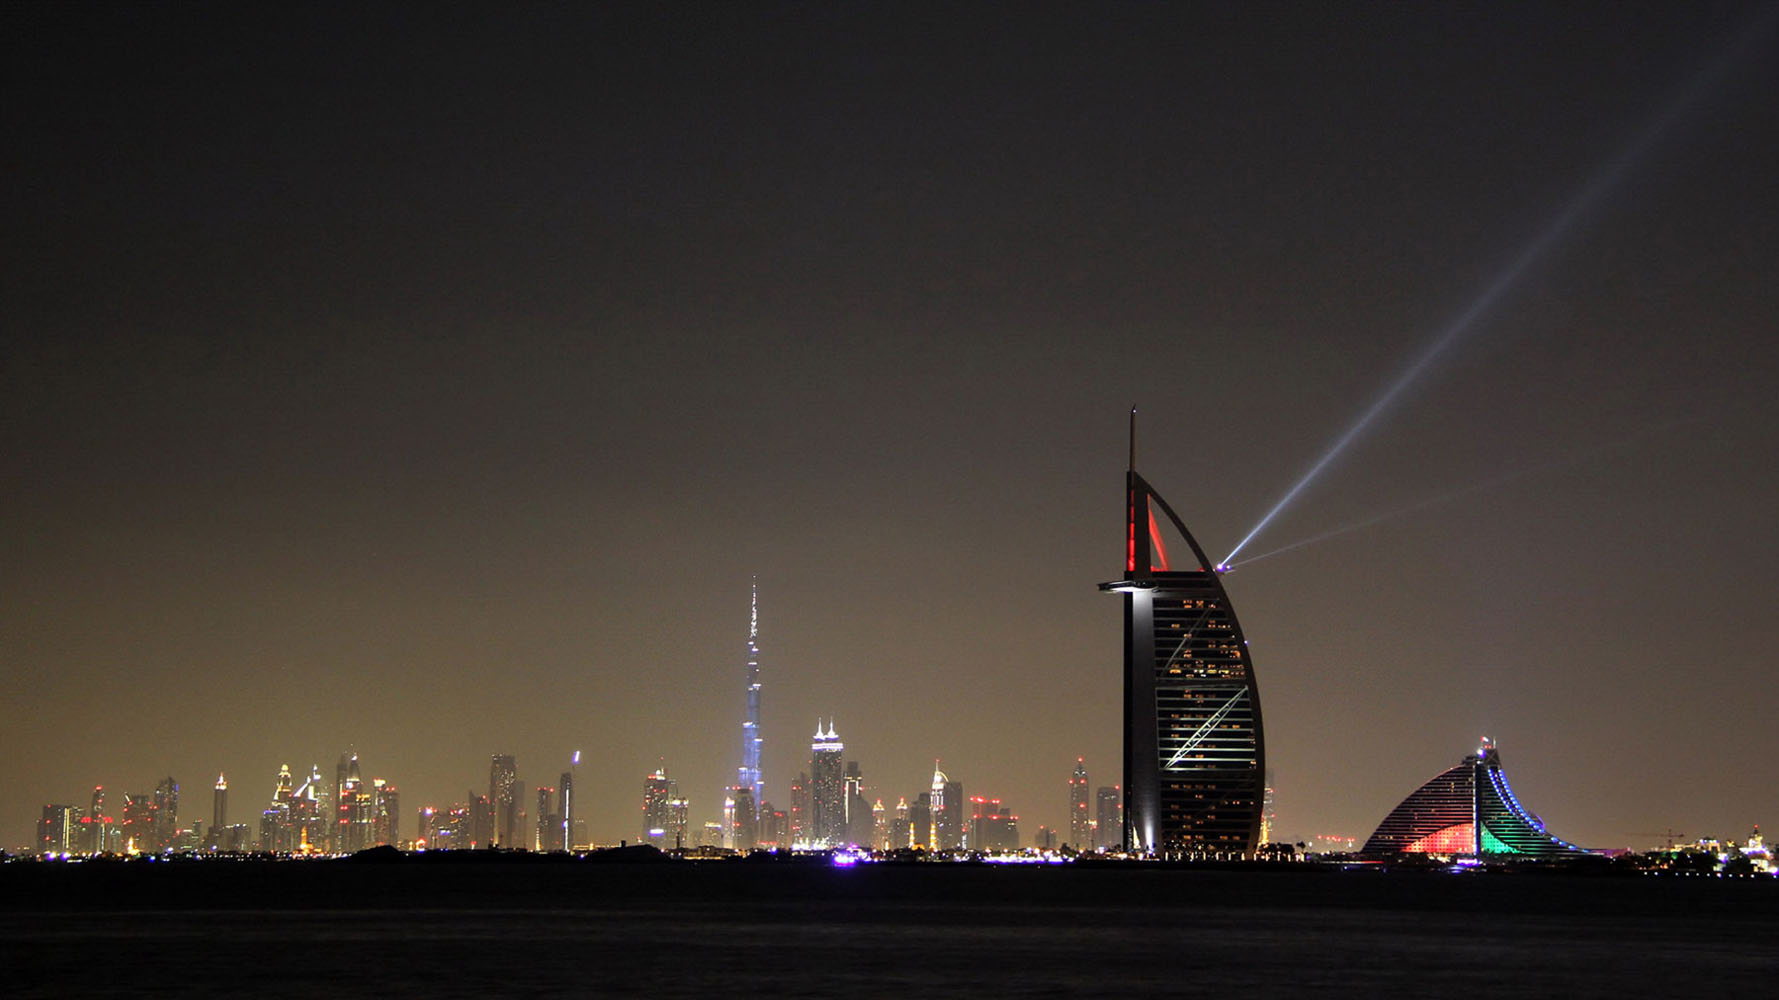 The Burj al Arab lit up with colorful lights on a Dubai evening